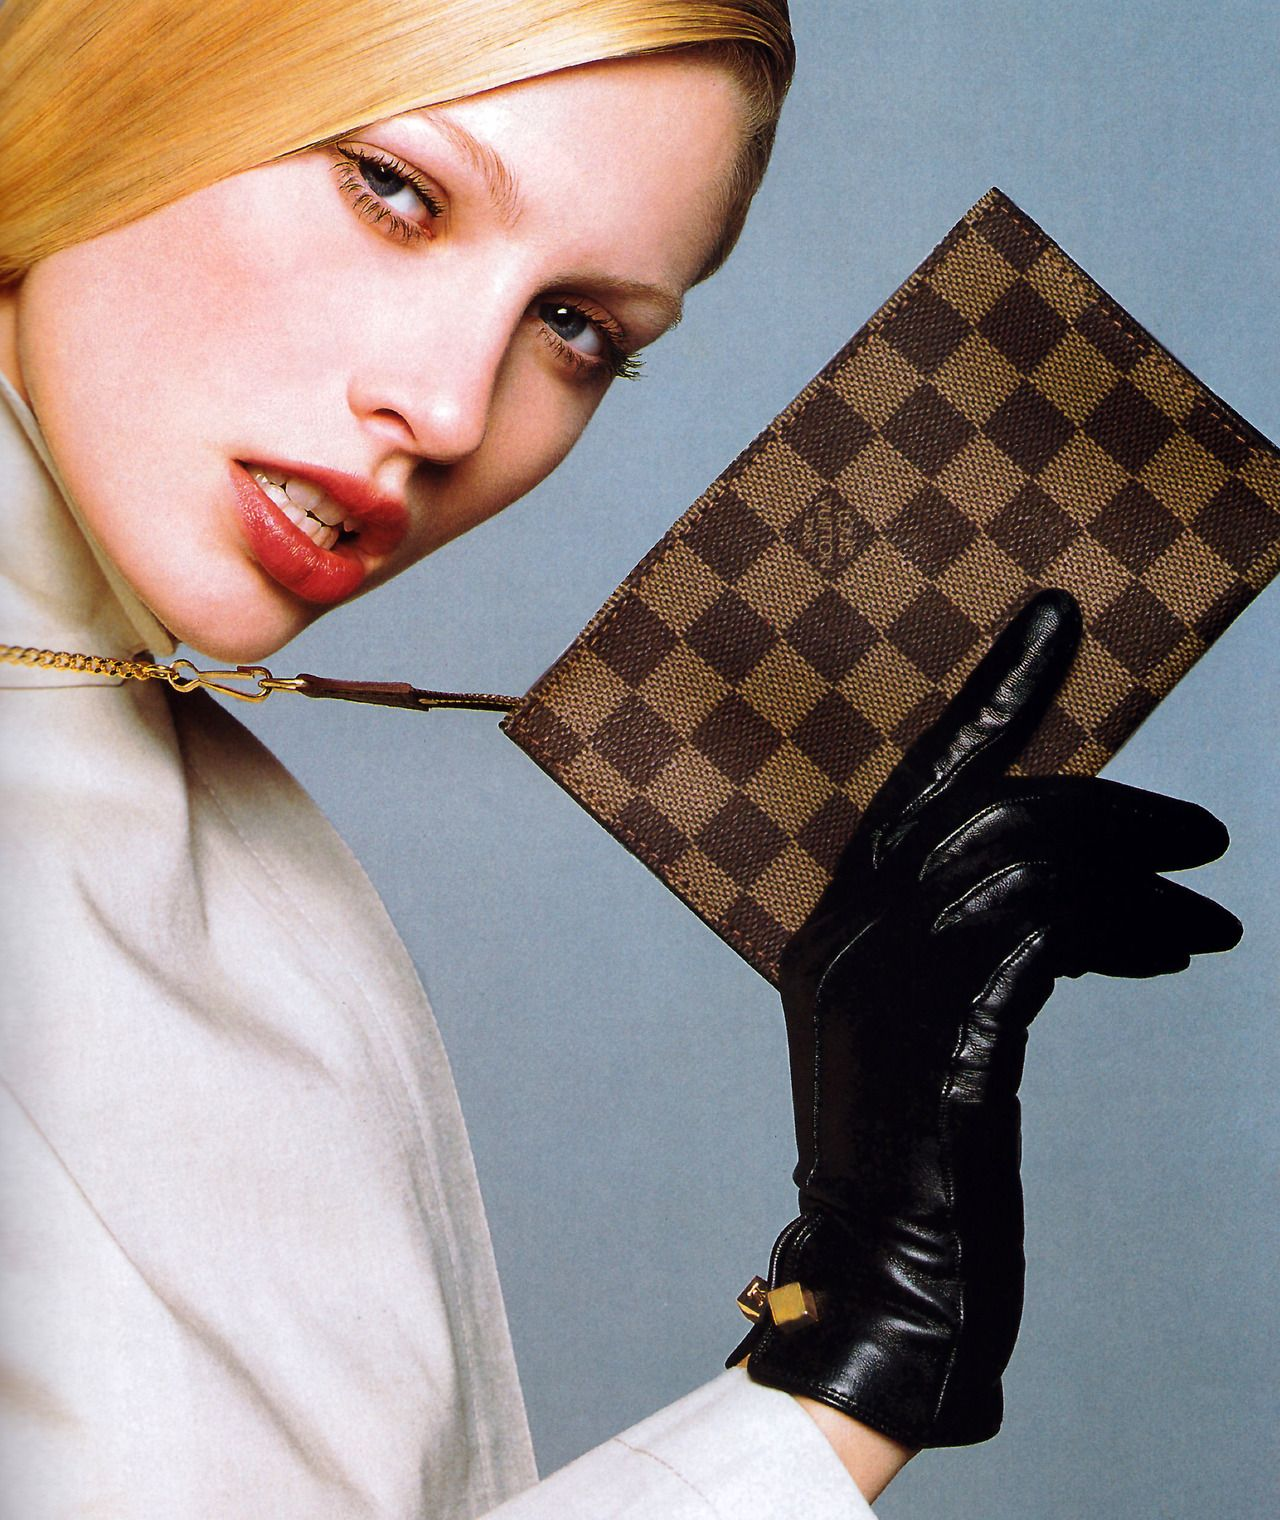 Louis Vuitton, American Vogue, May 1998.